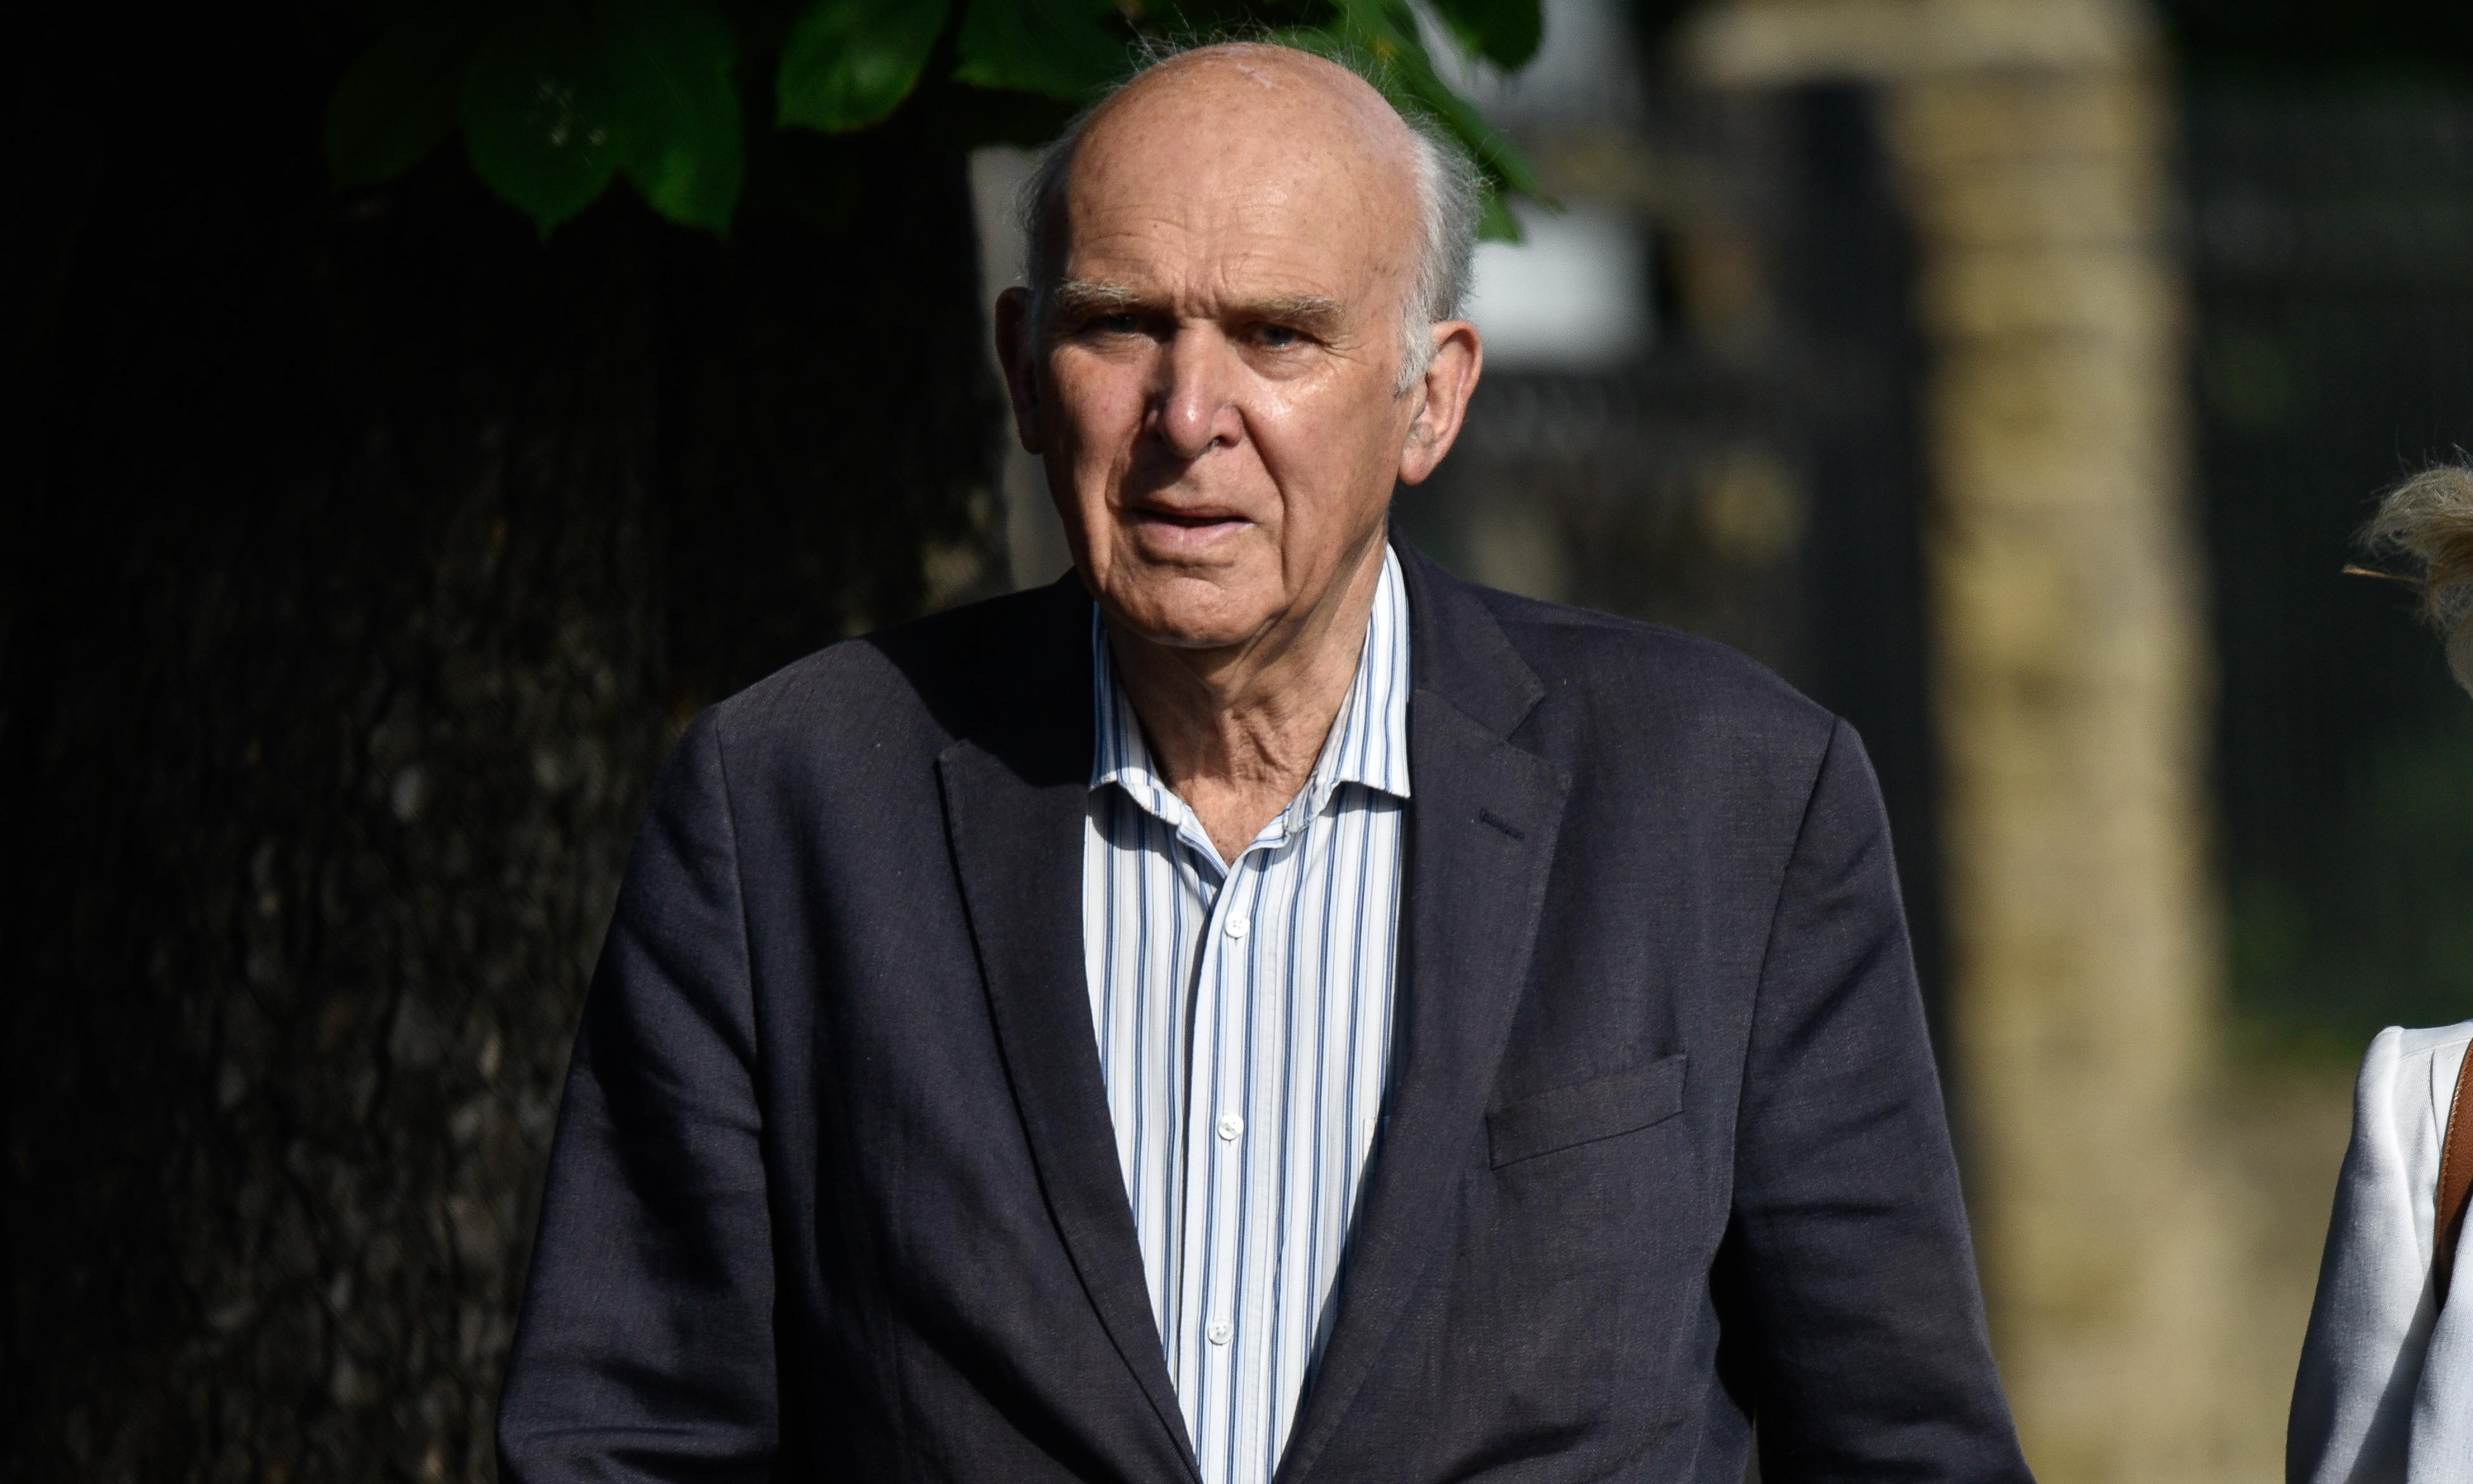 Vince Cable to step down as Lib Dem leader on 23 July